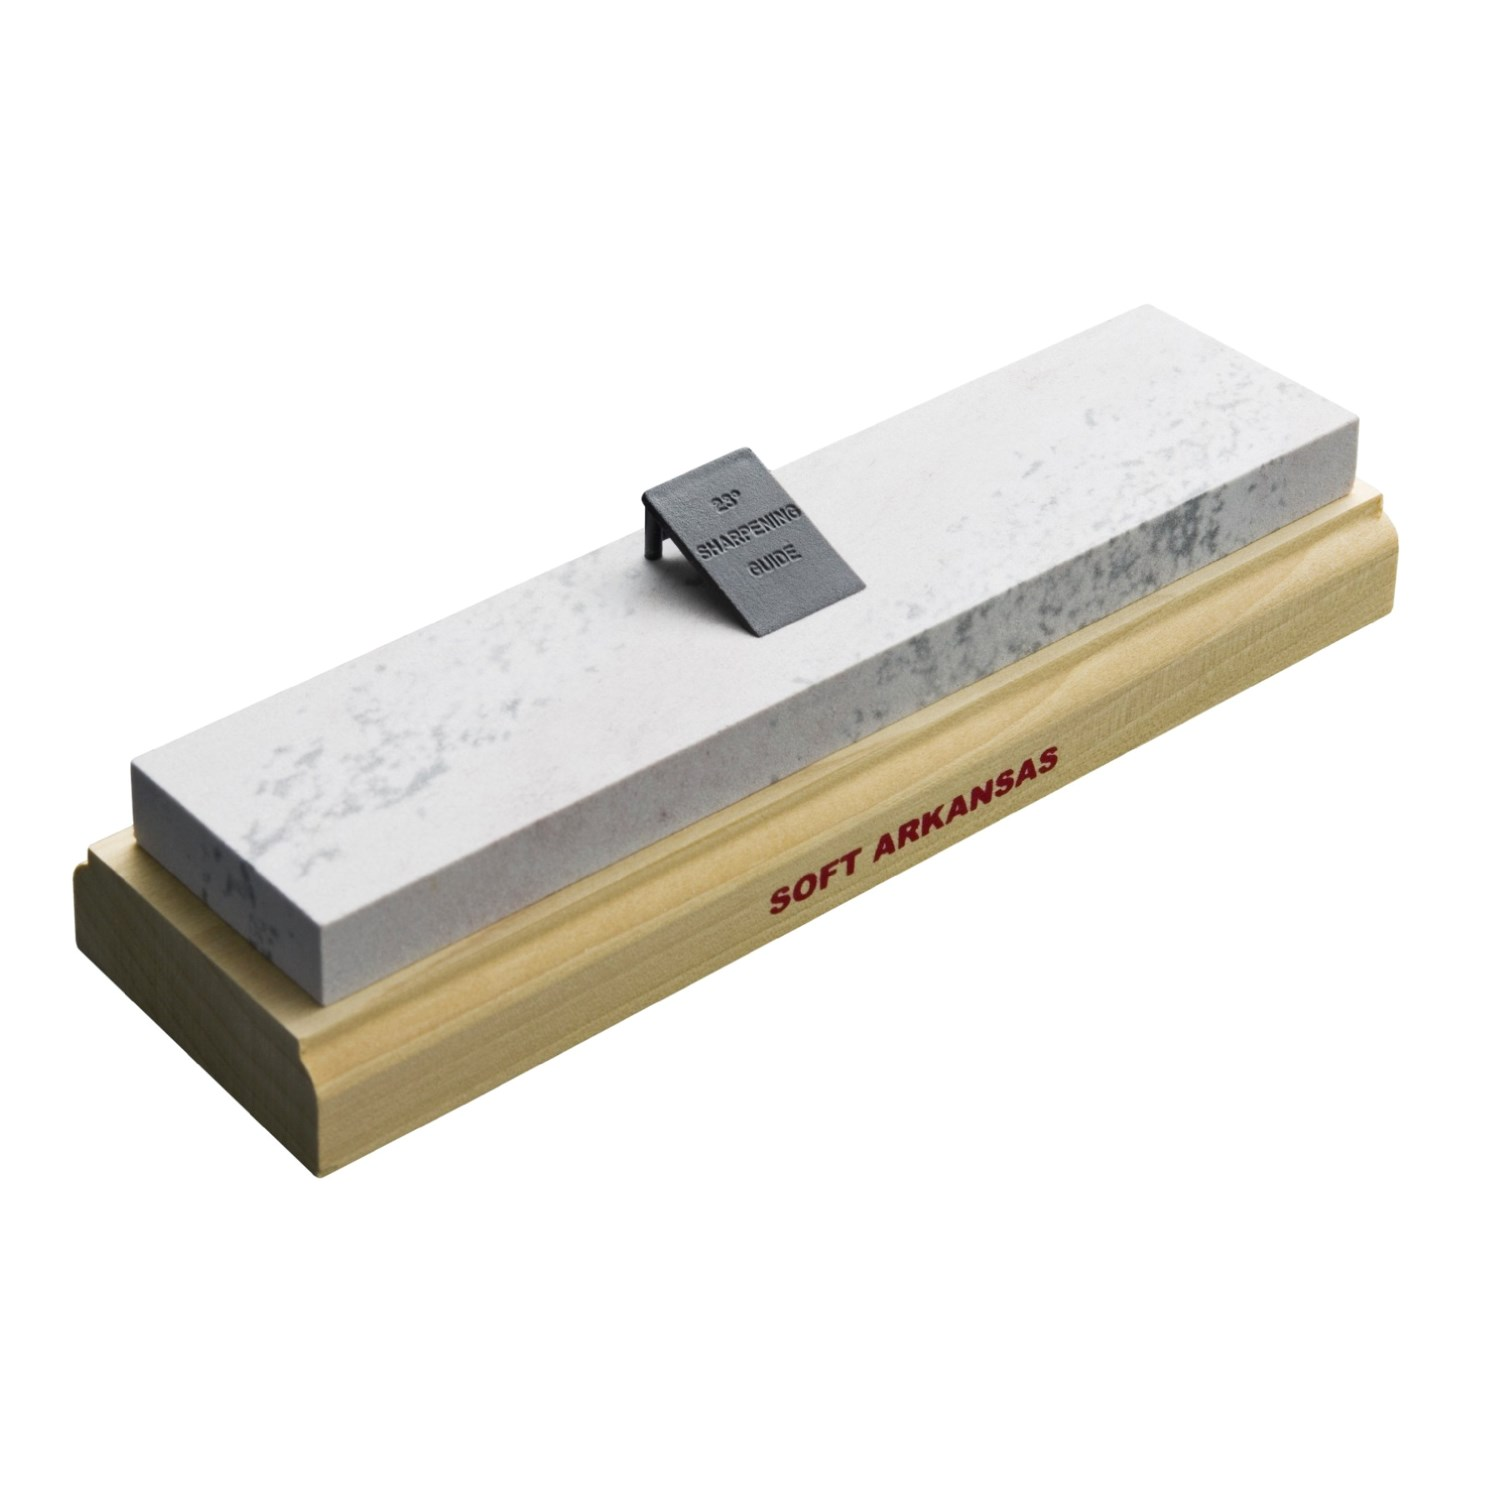 Dan 39 s whetstone arkansas sharpening stone soft 7 83974 for Dan s